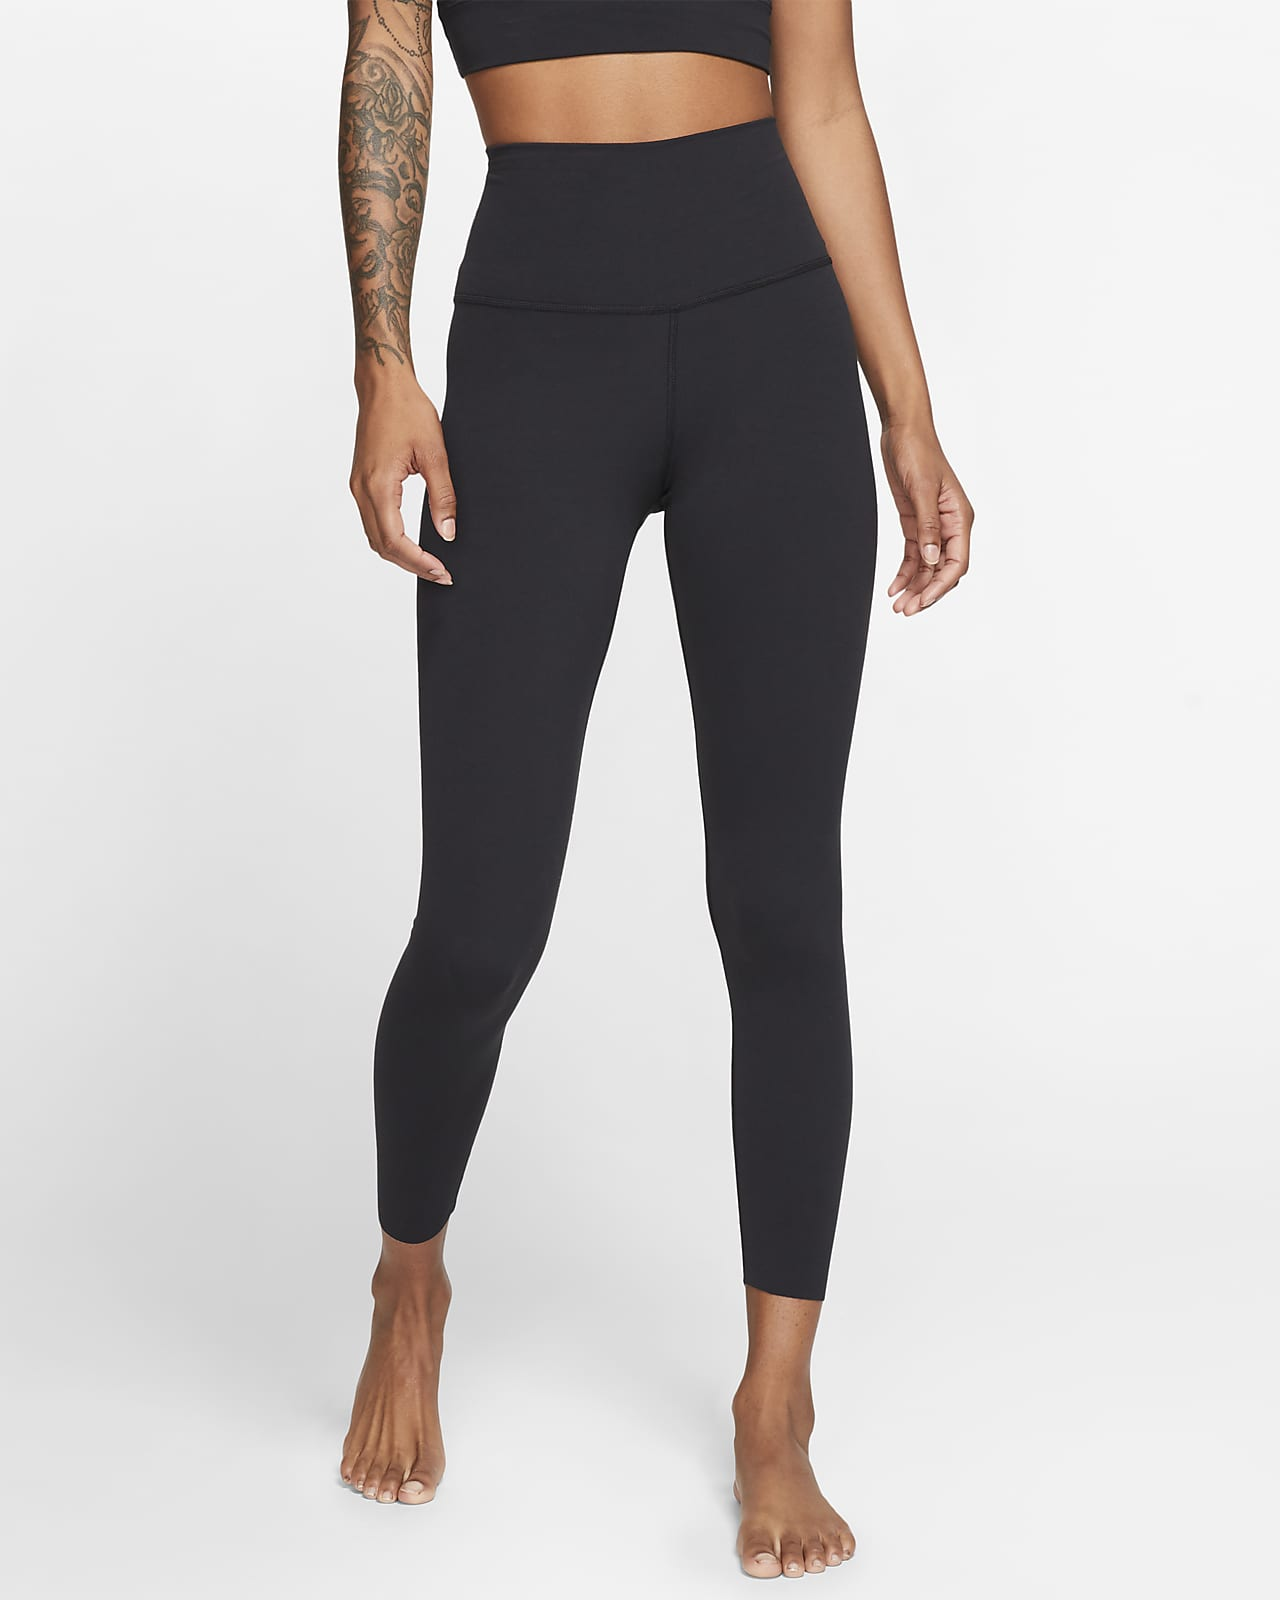 Nike Yoga Luxe Women's Infinalon 7/8 Leggings